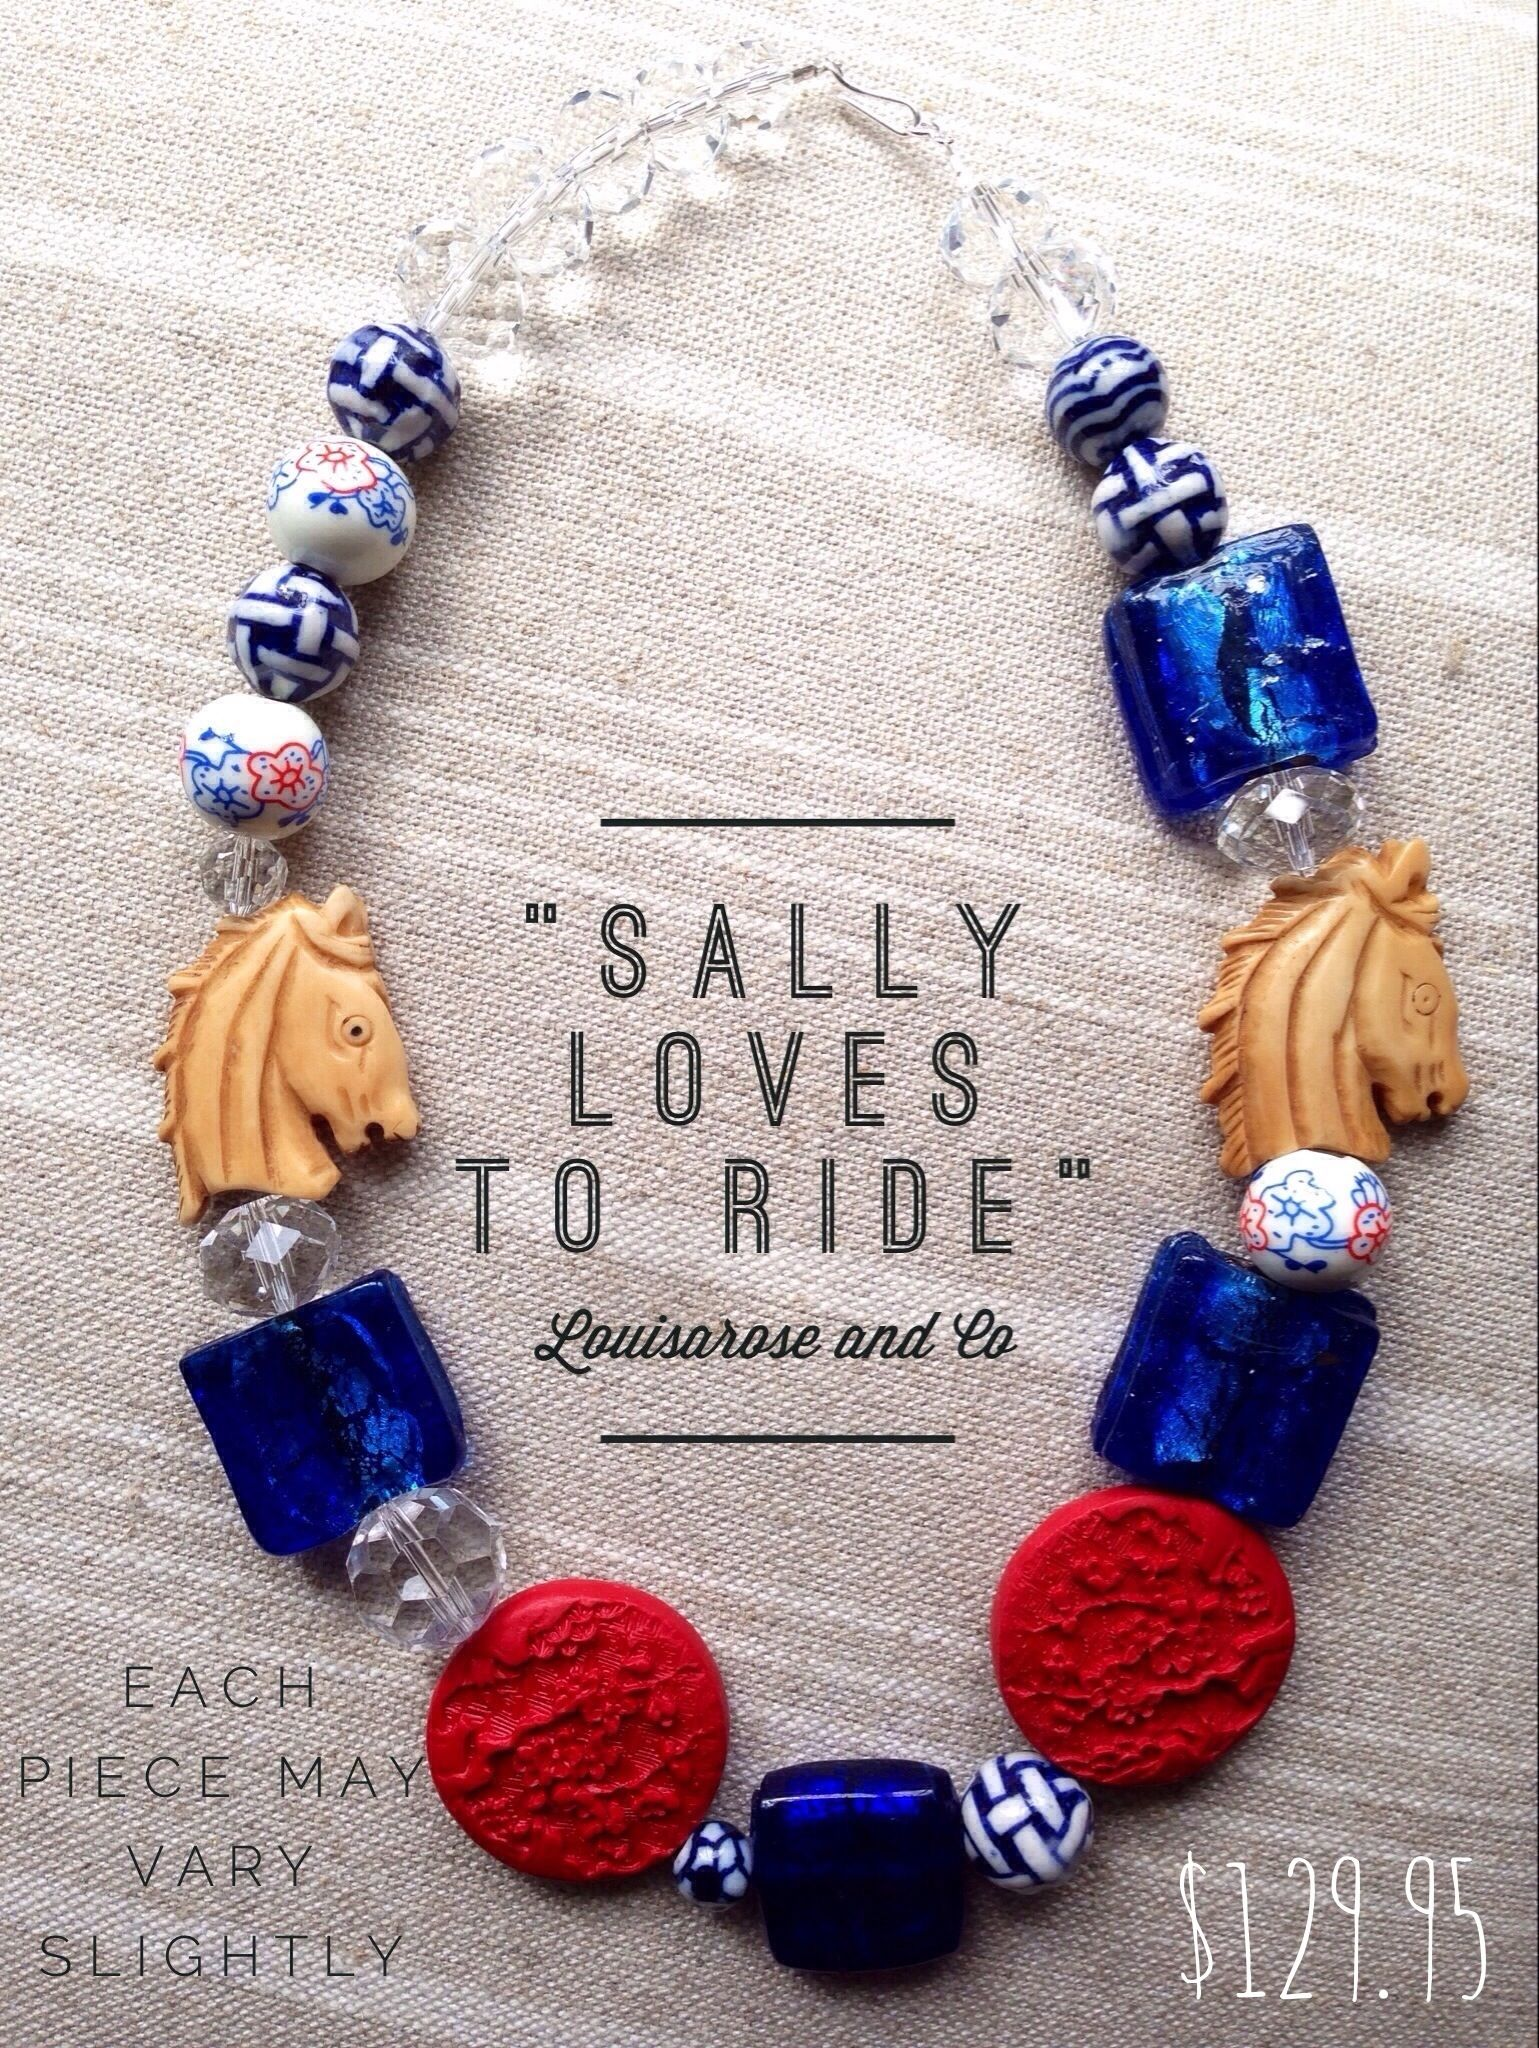 """""""Sally Loves to Ride"""" $129.95 www.louisaroseandco.com.au Louisarose and Co"""